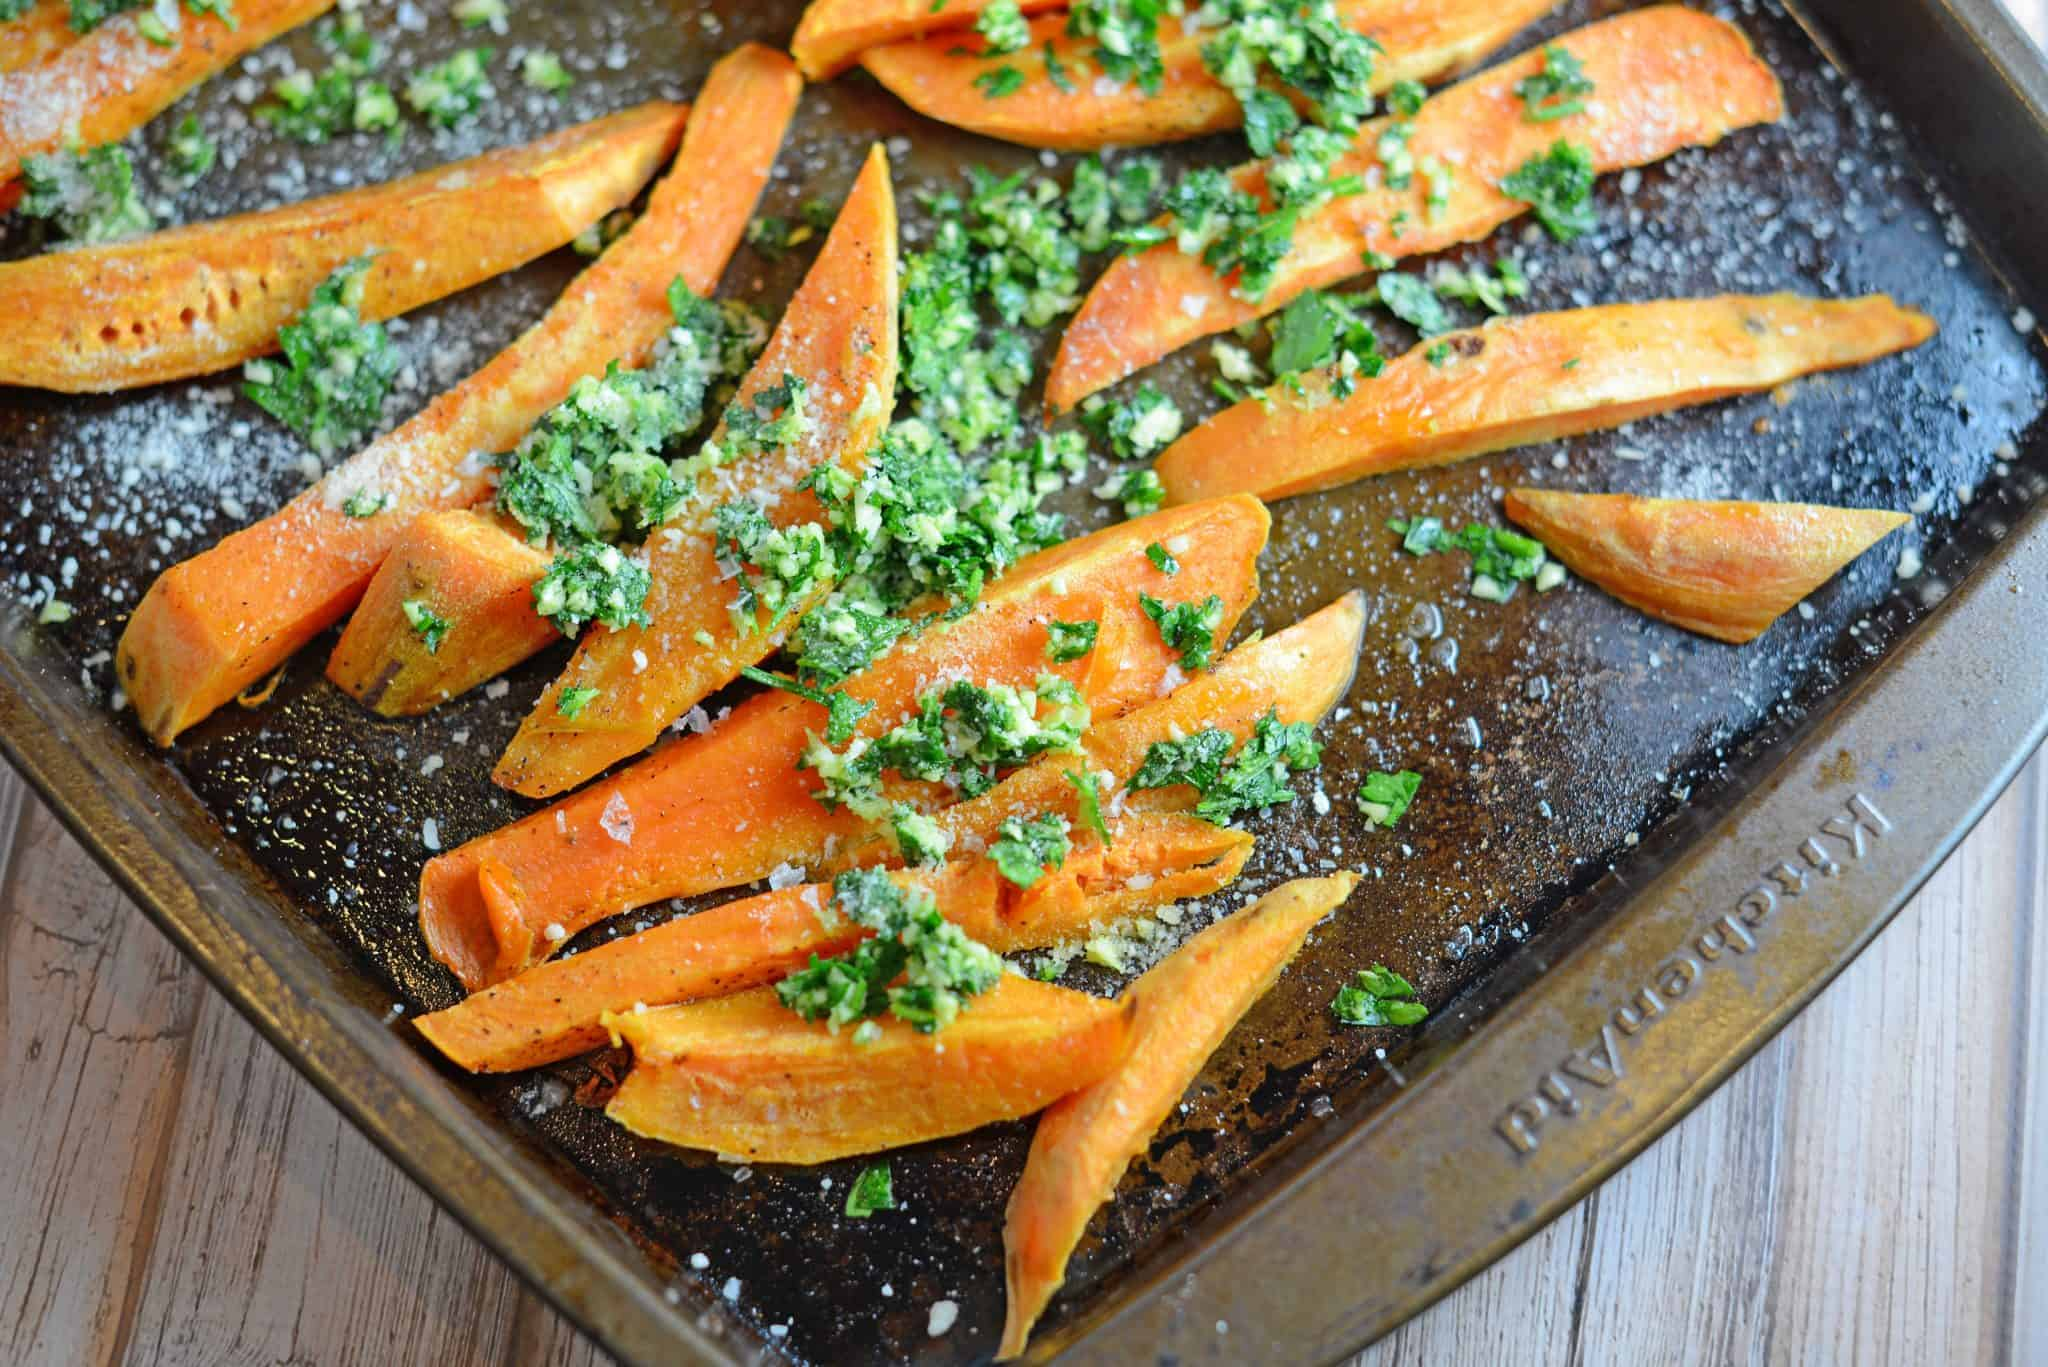 Garlic Parmesan Baked Sweet Potato Fries will jazz up your dinner with lightly tossed herbs, cheese and tender sweet potatoes! #sweetpotatofries #bakedsweetpotatofries #sweetpotatorecipes www.savoryexperiments.com